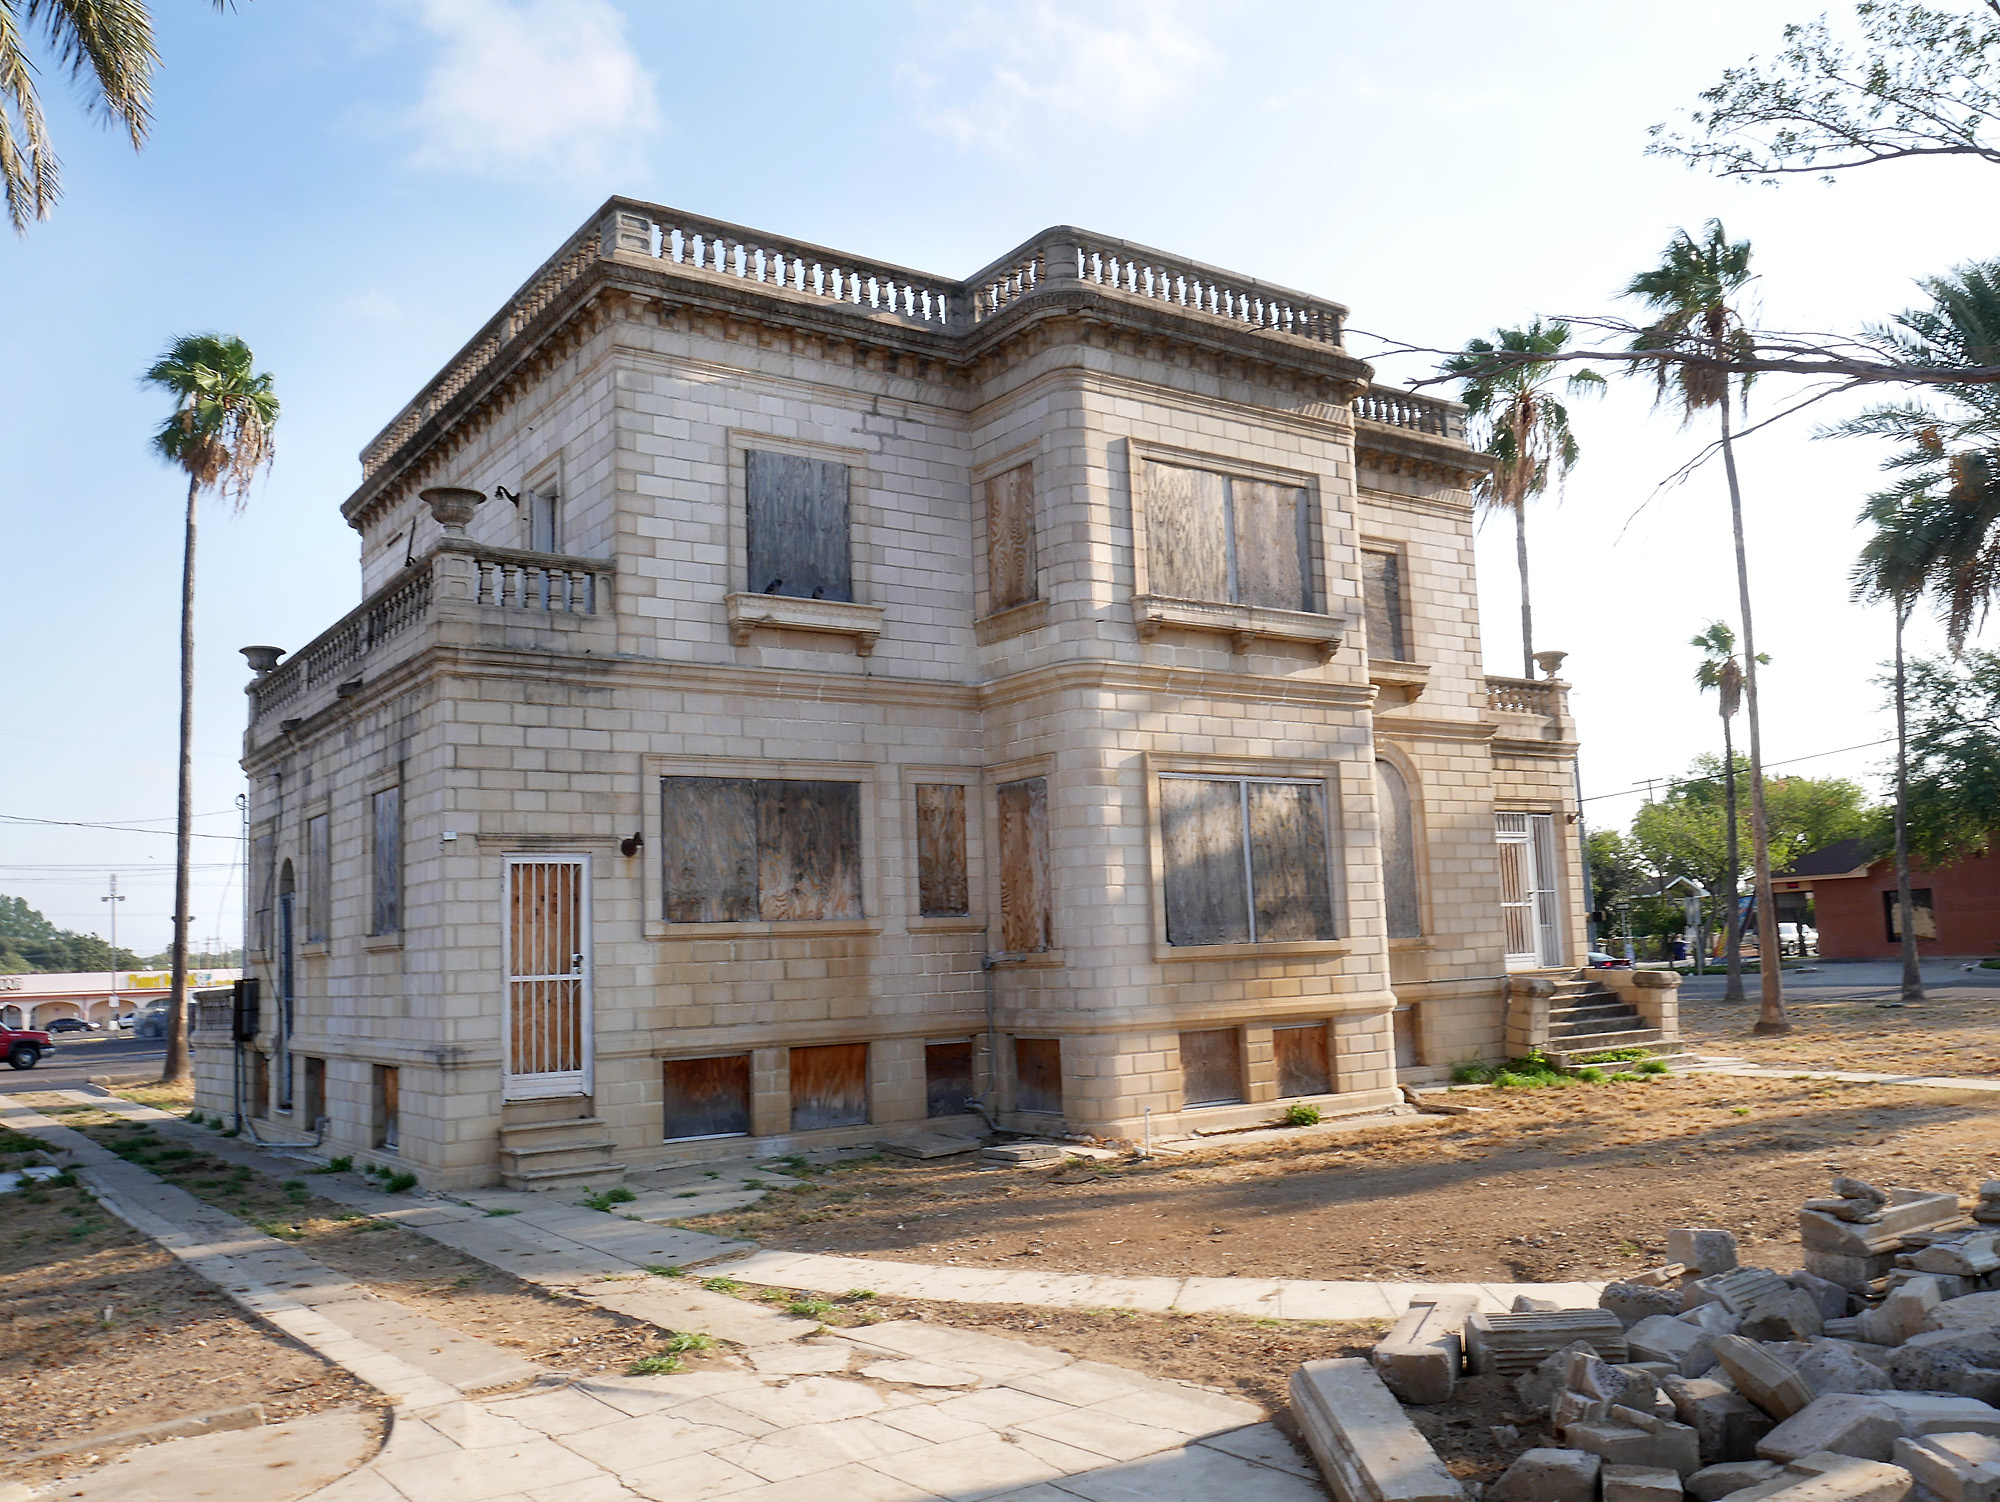 Perfect French Chateau City Takes On Restoration Central Laredo Laredomorning Times City Takes On Restoration Central Laredo Rivera Eral Home Mission Texas Rivera Eral Home French Chateau Bronx curbed Rivera Funeral Home